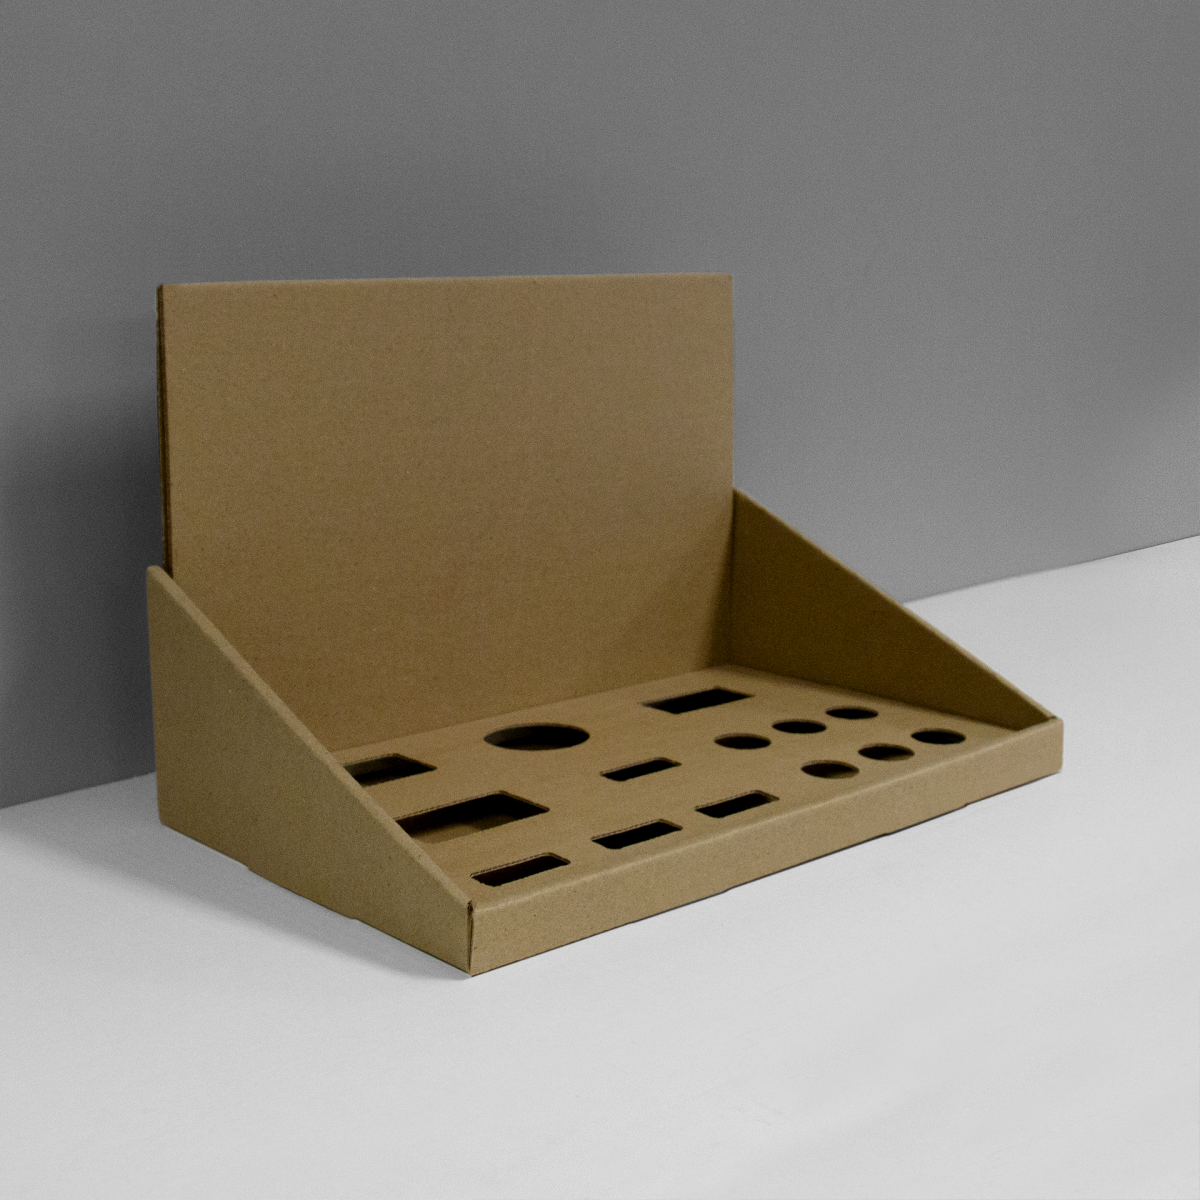 Cardboard counter display with multiple inserts and header - kraft